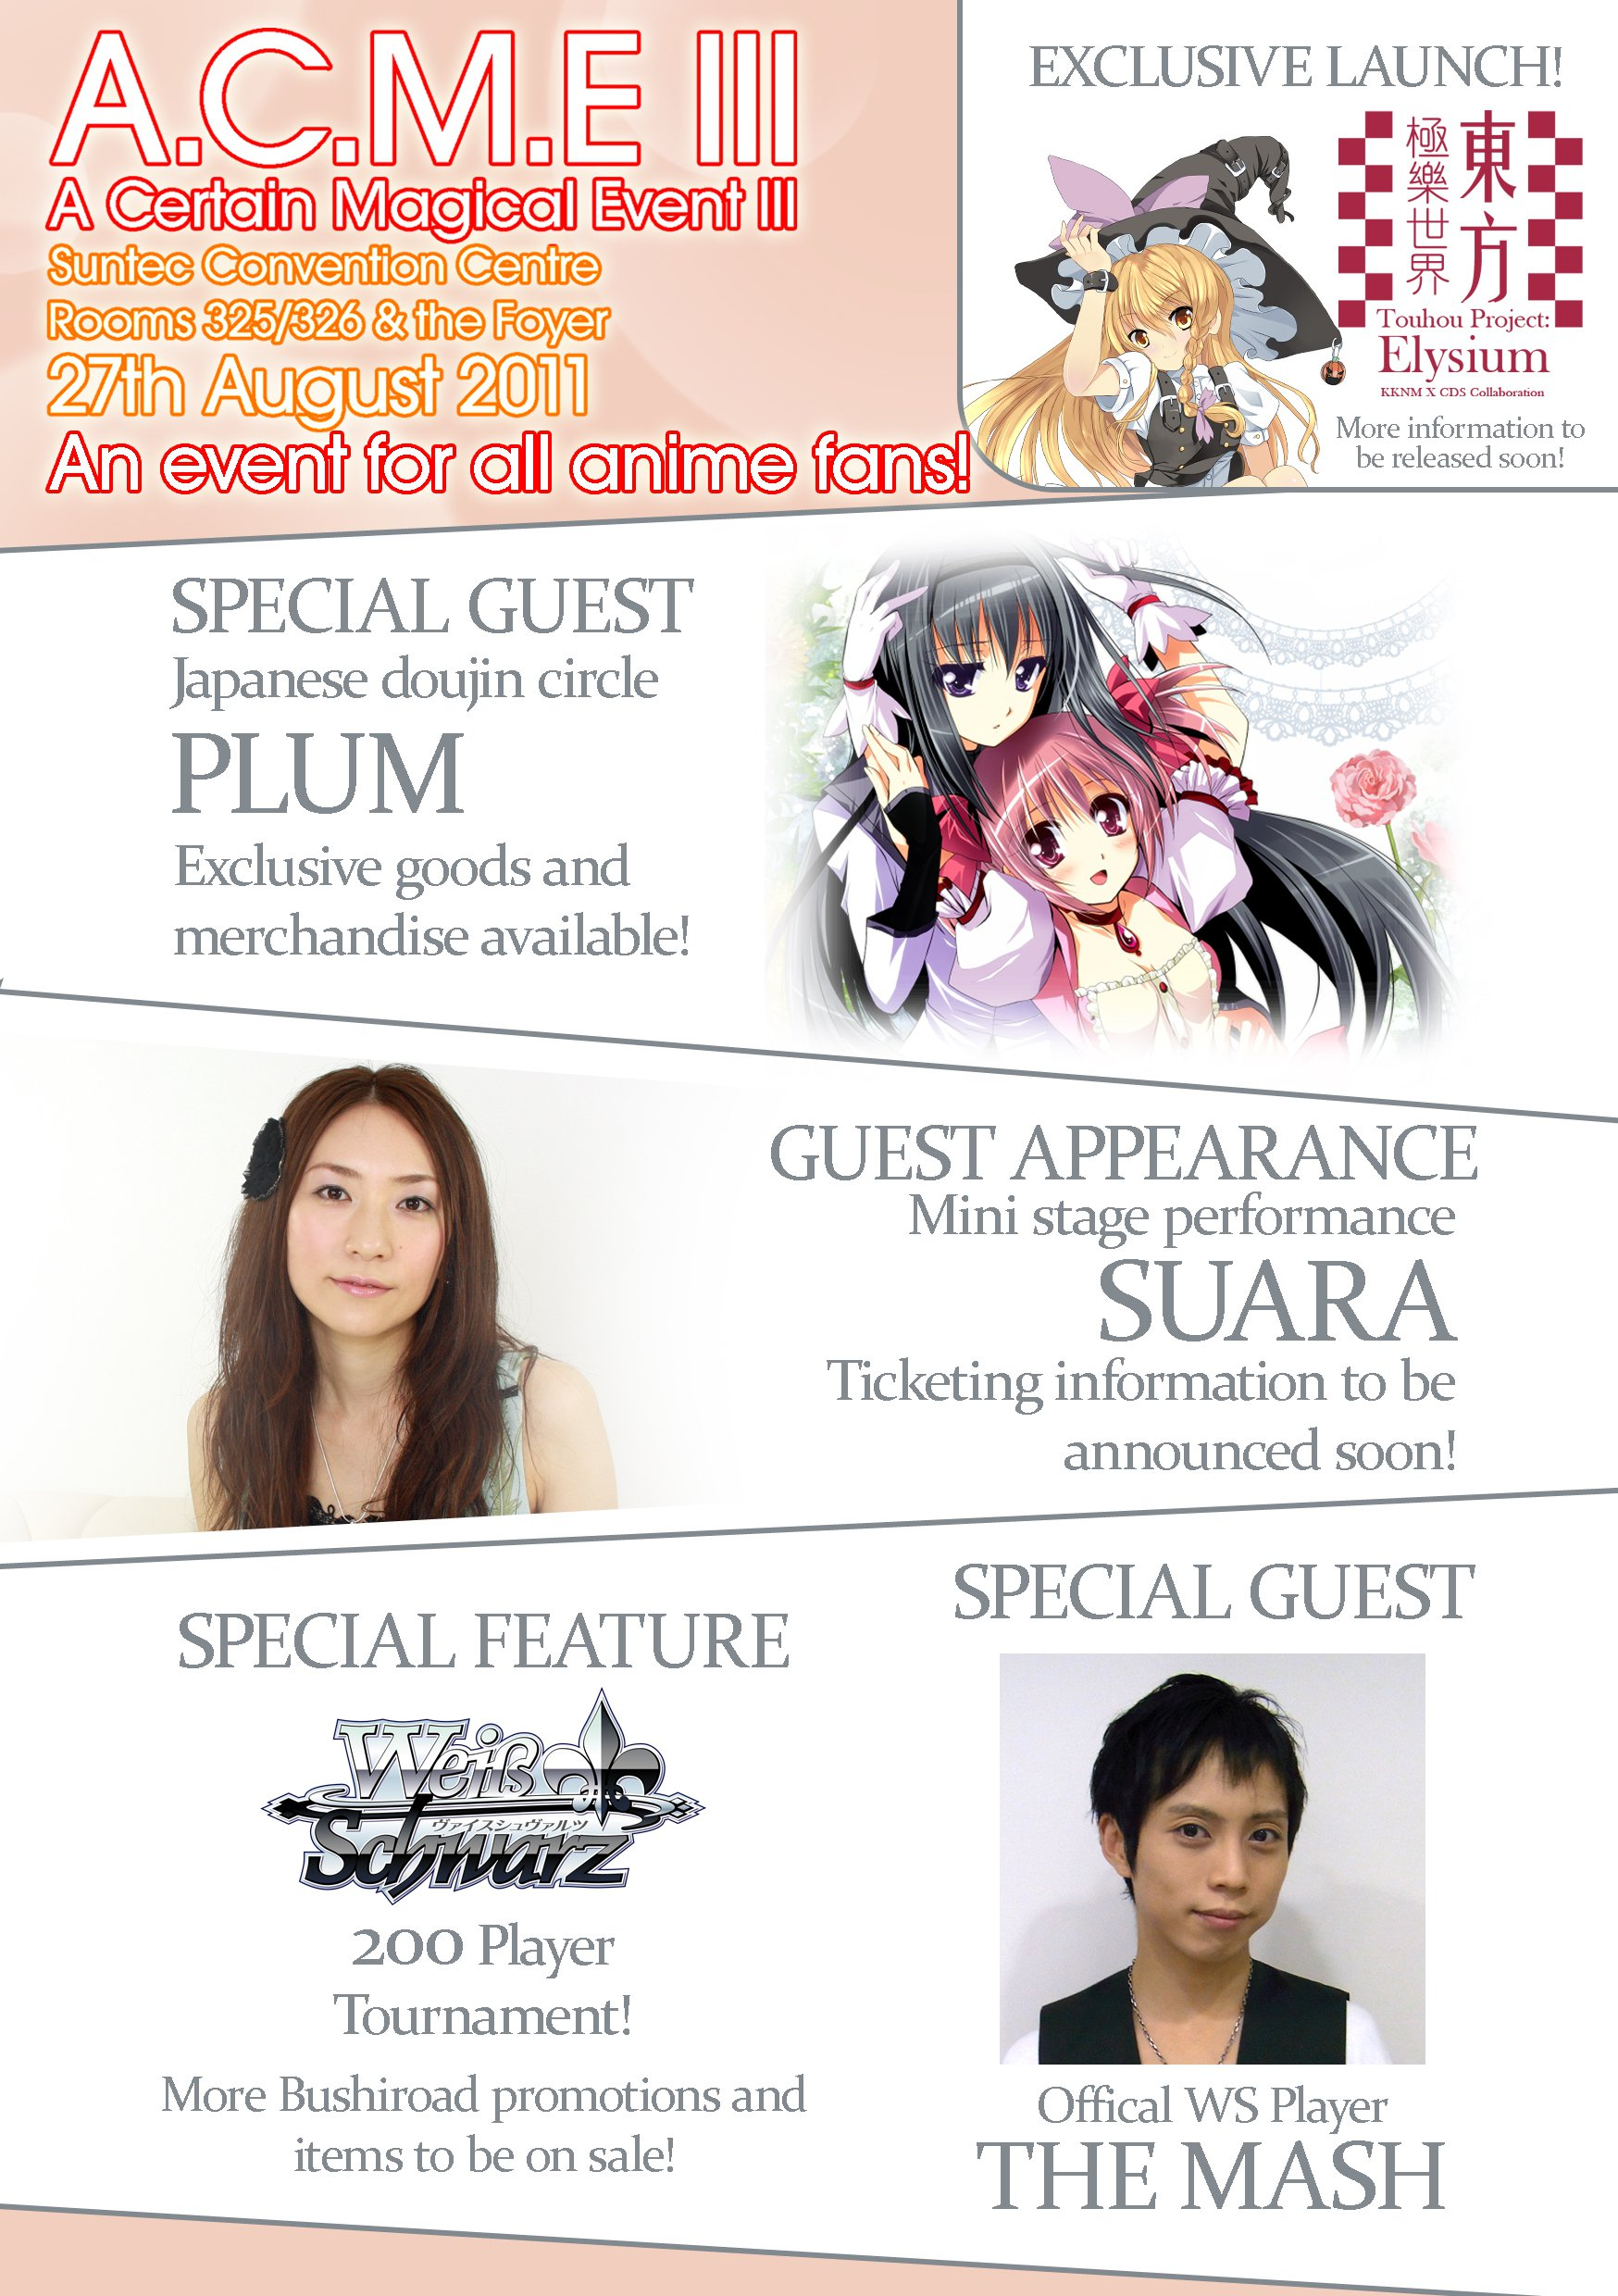 A Certain Magical Event (ACME) III 宣传图.jpg